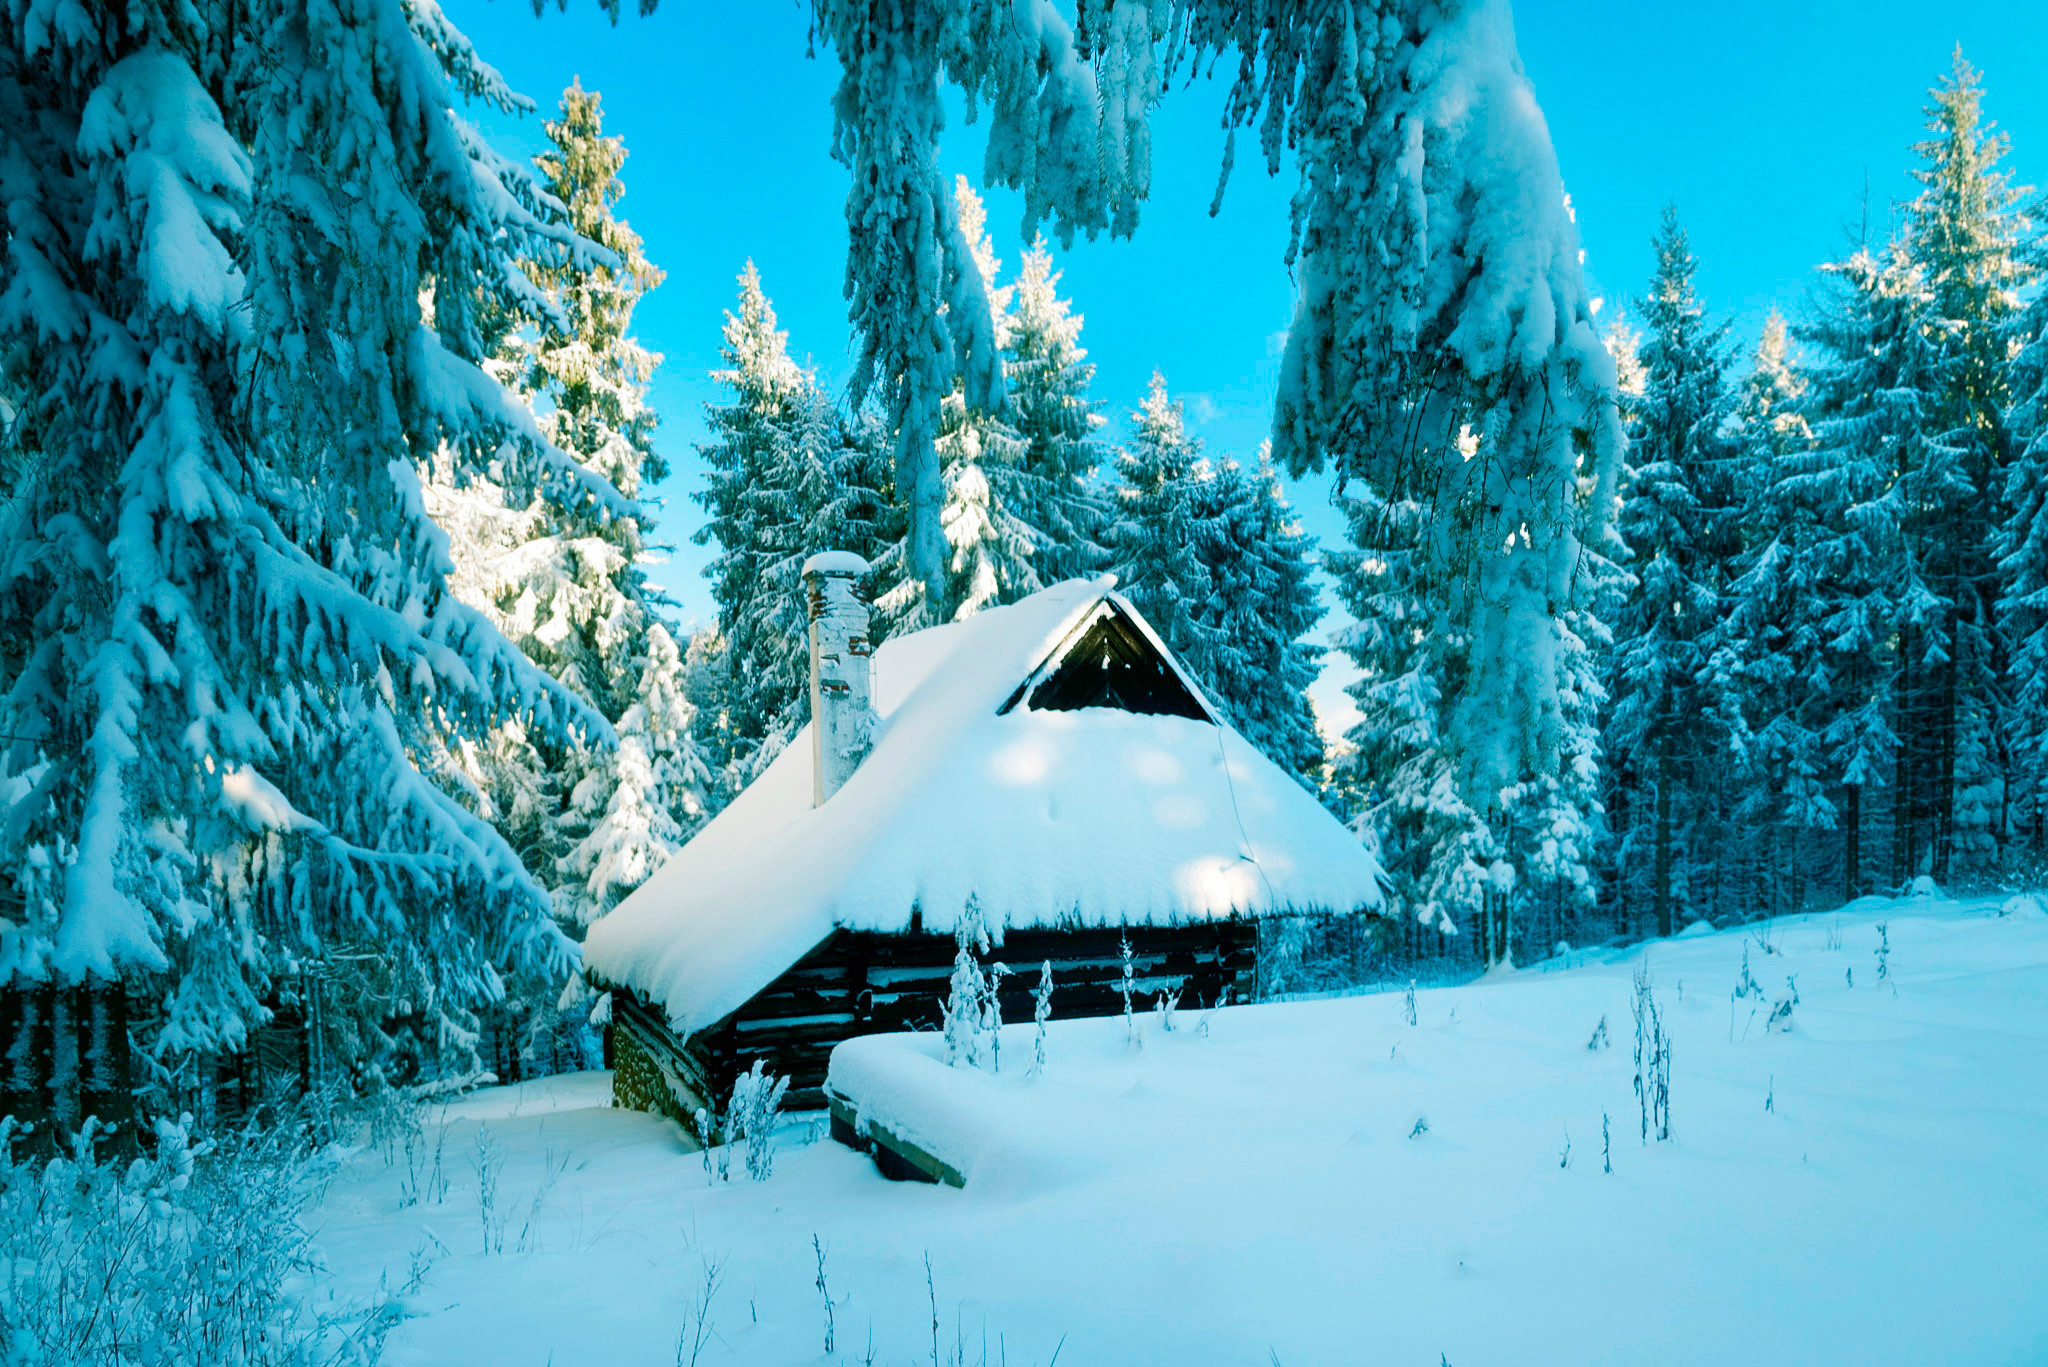 58686 download wallpaper Winter, Nature, Snow, Poland, Forest, Small House, Lodge screensavers and pictures for free